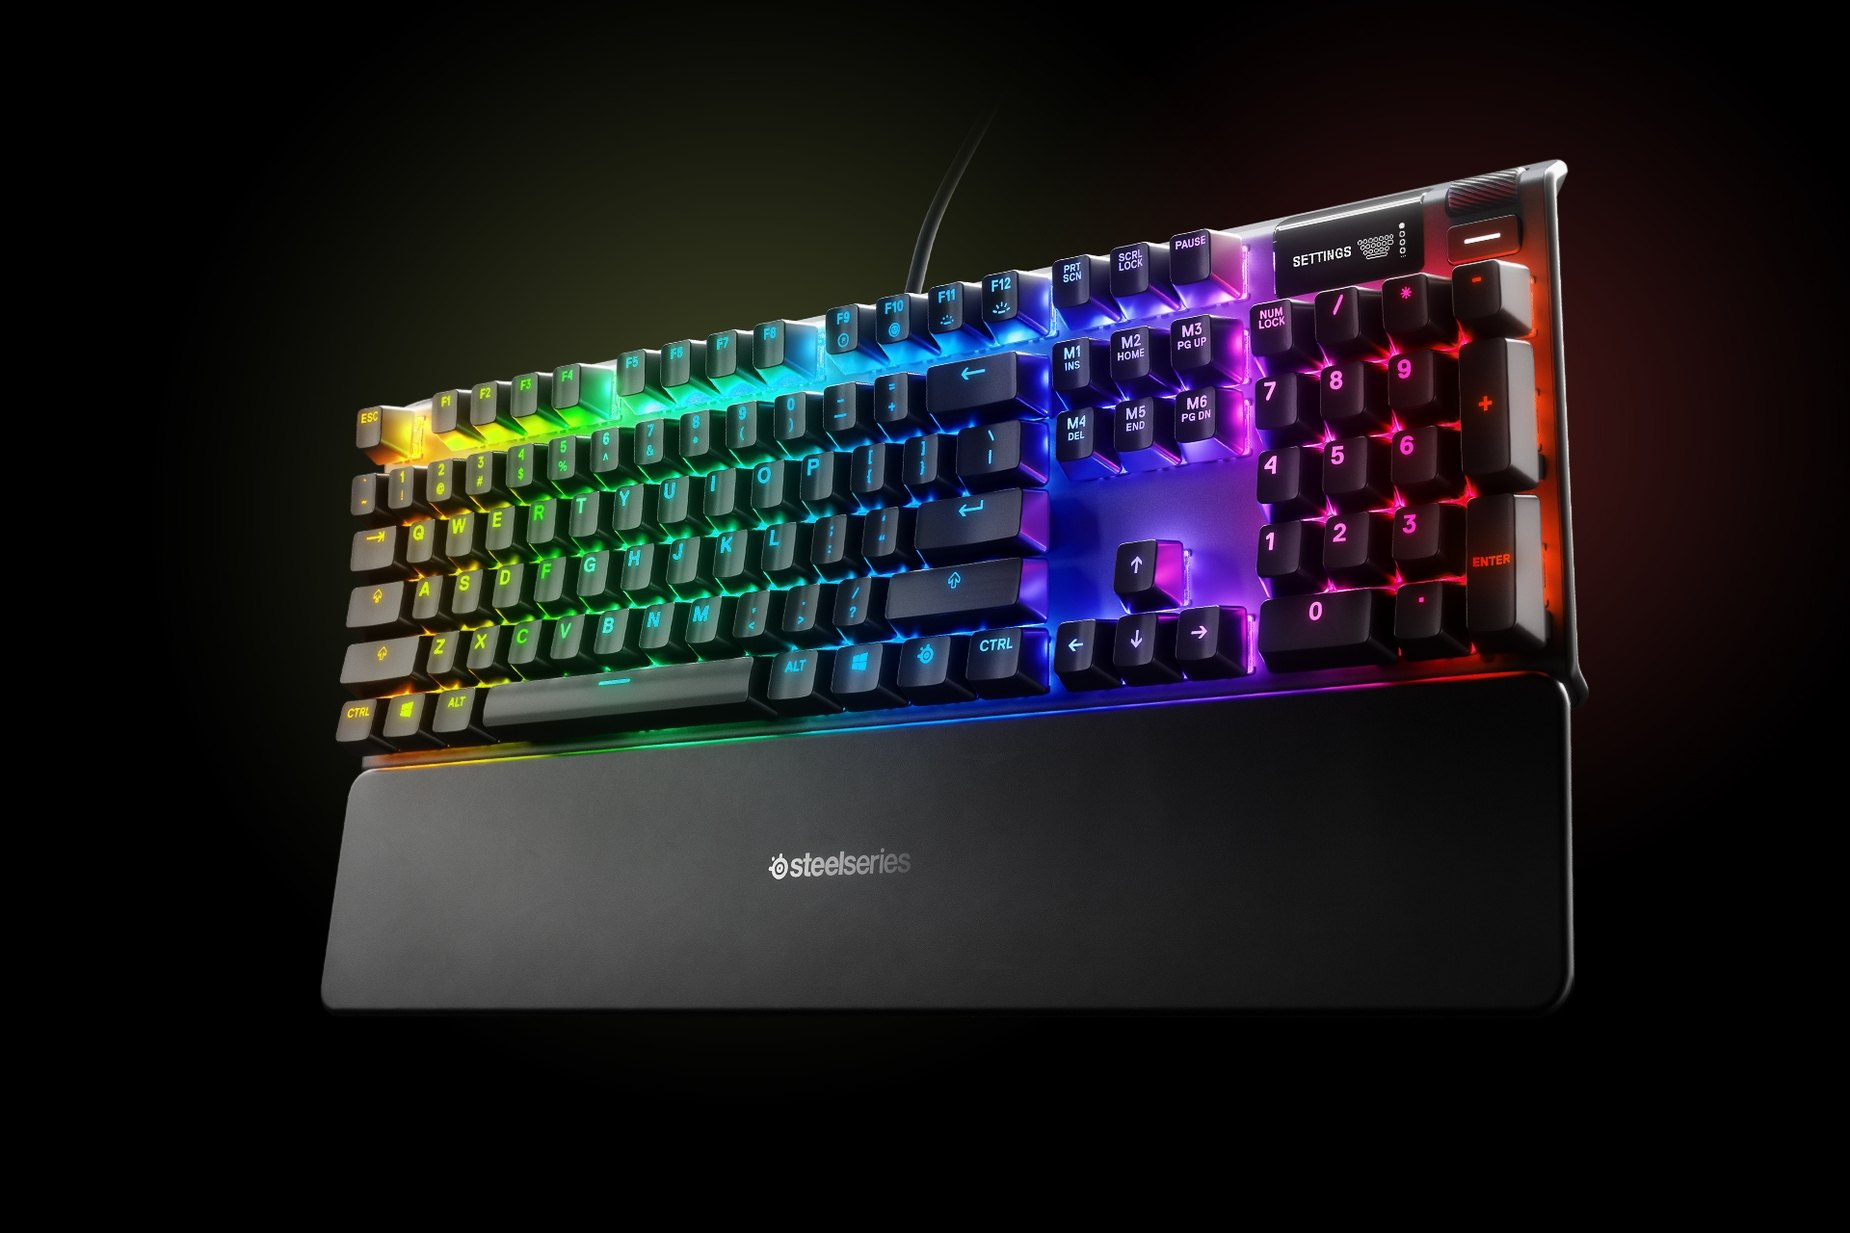 Almanca - Apex 7 (Blue Switch) gaming keyboard with the illumination lit up on dark background, also shows the OLED screen and controls used to change settings and adjust audio